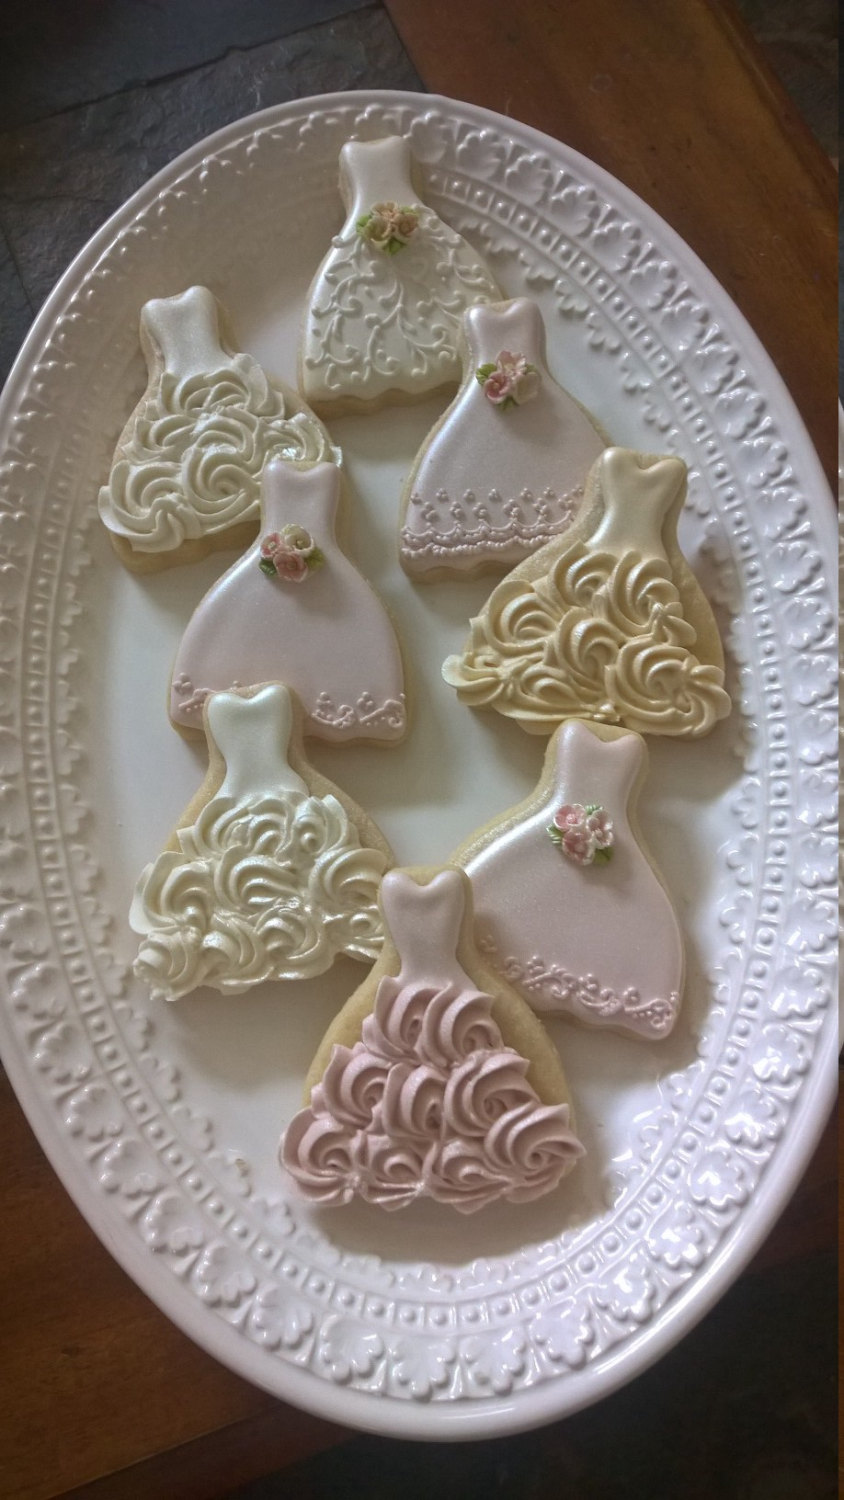 15 Pieces Petite Sized Wedding Dress Cookies - Cookie Favors, Cookies, Bridal Shower Wedding Gown Cookies